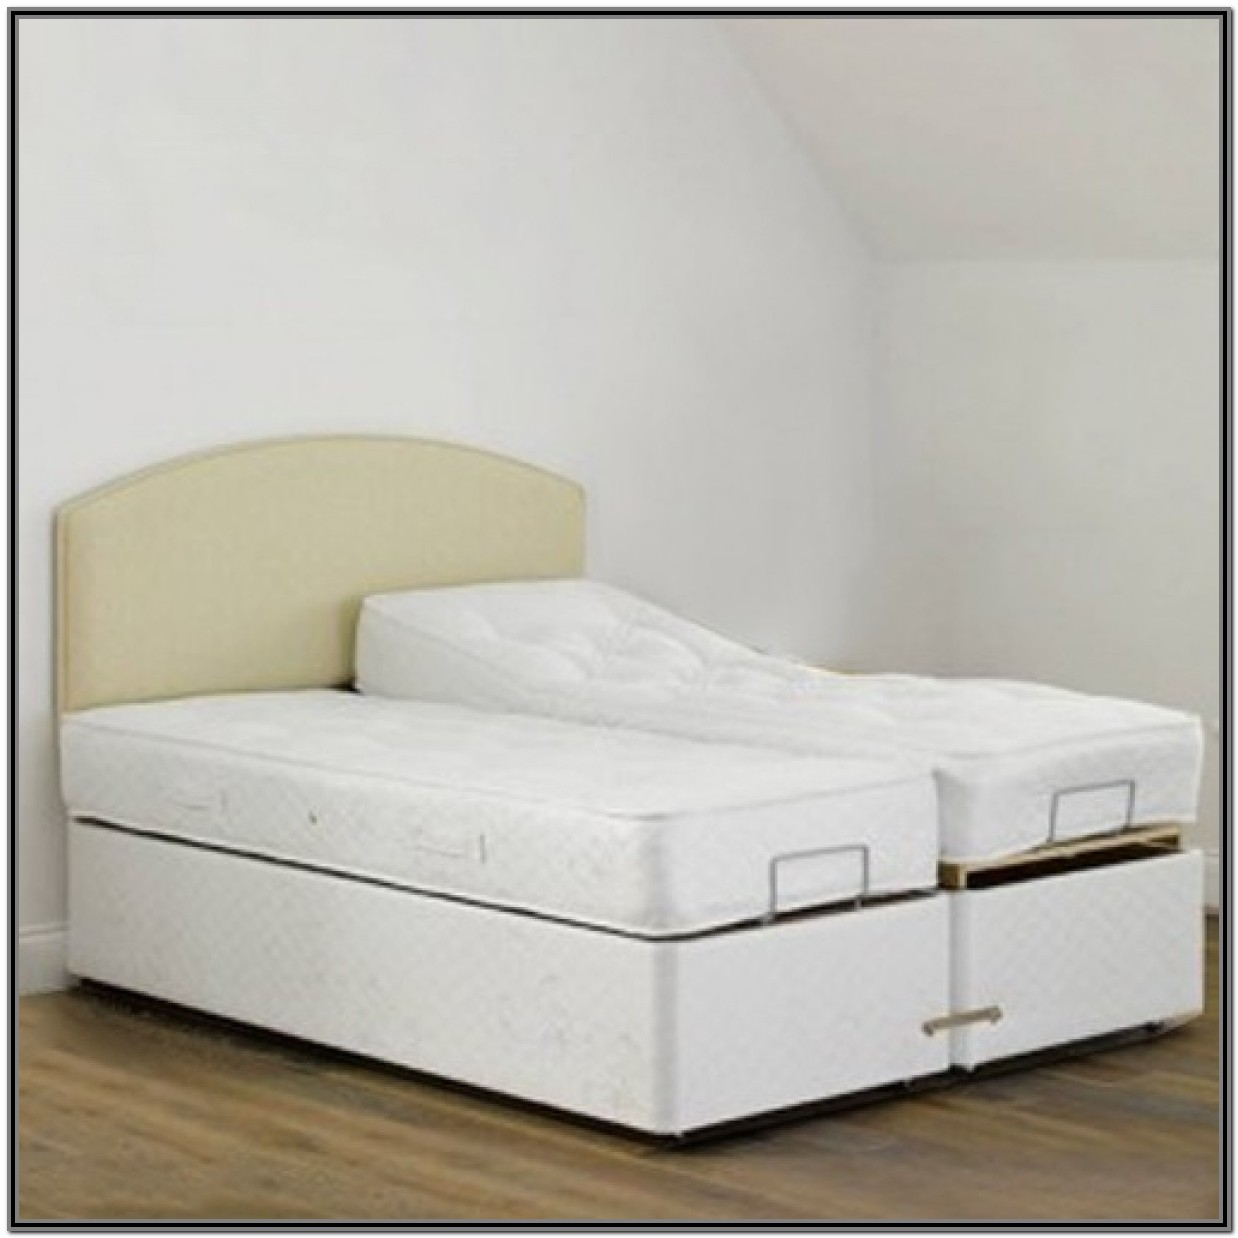 Adjustable Beds King Size Split